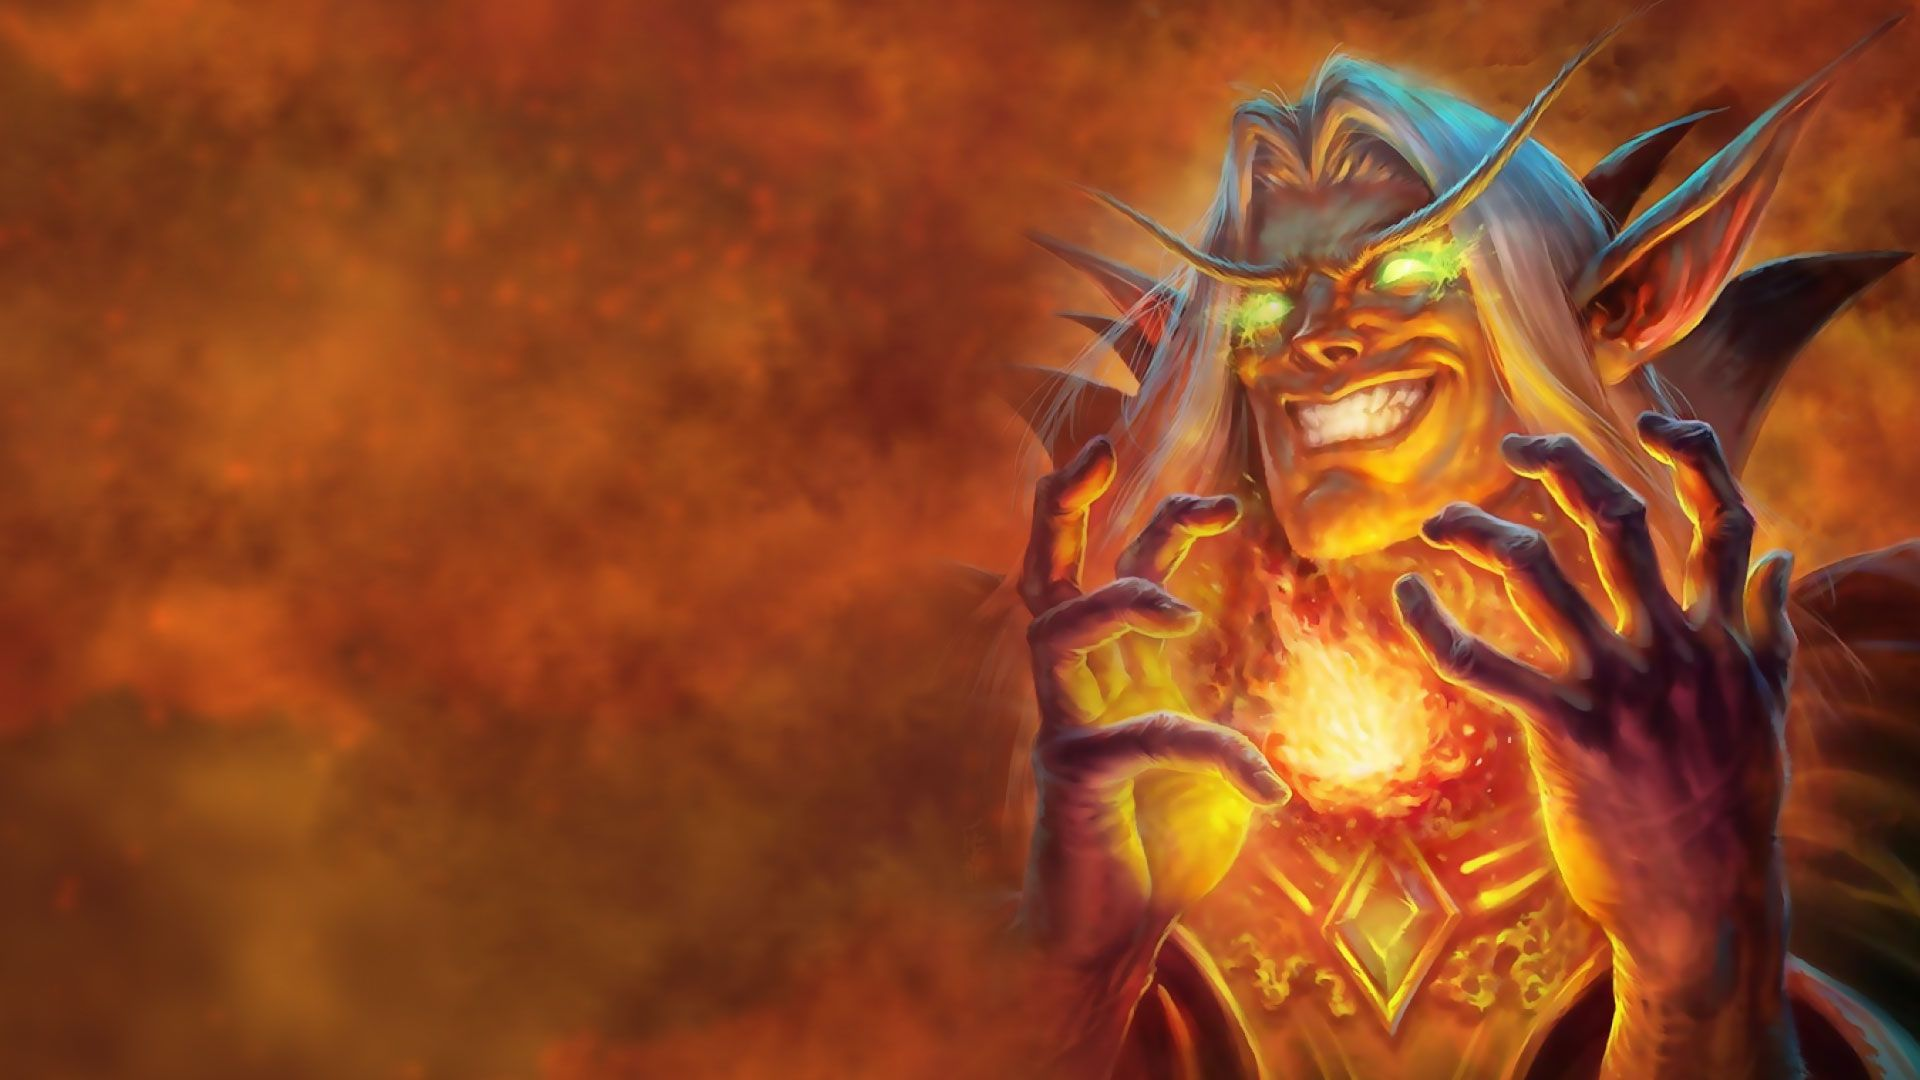 Validated Doomsayer Wallpaper From Whispers Of The Old Gods